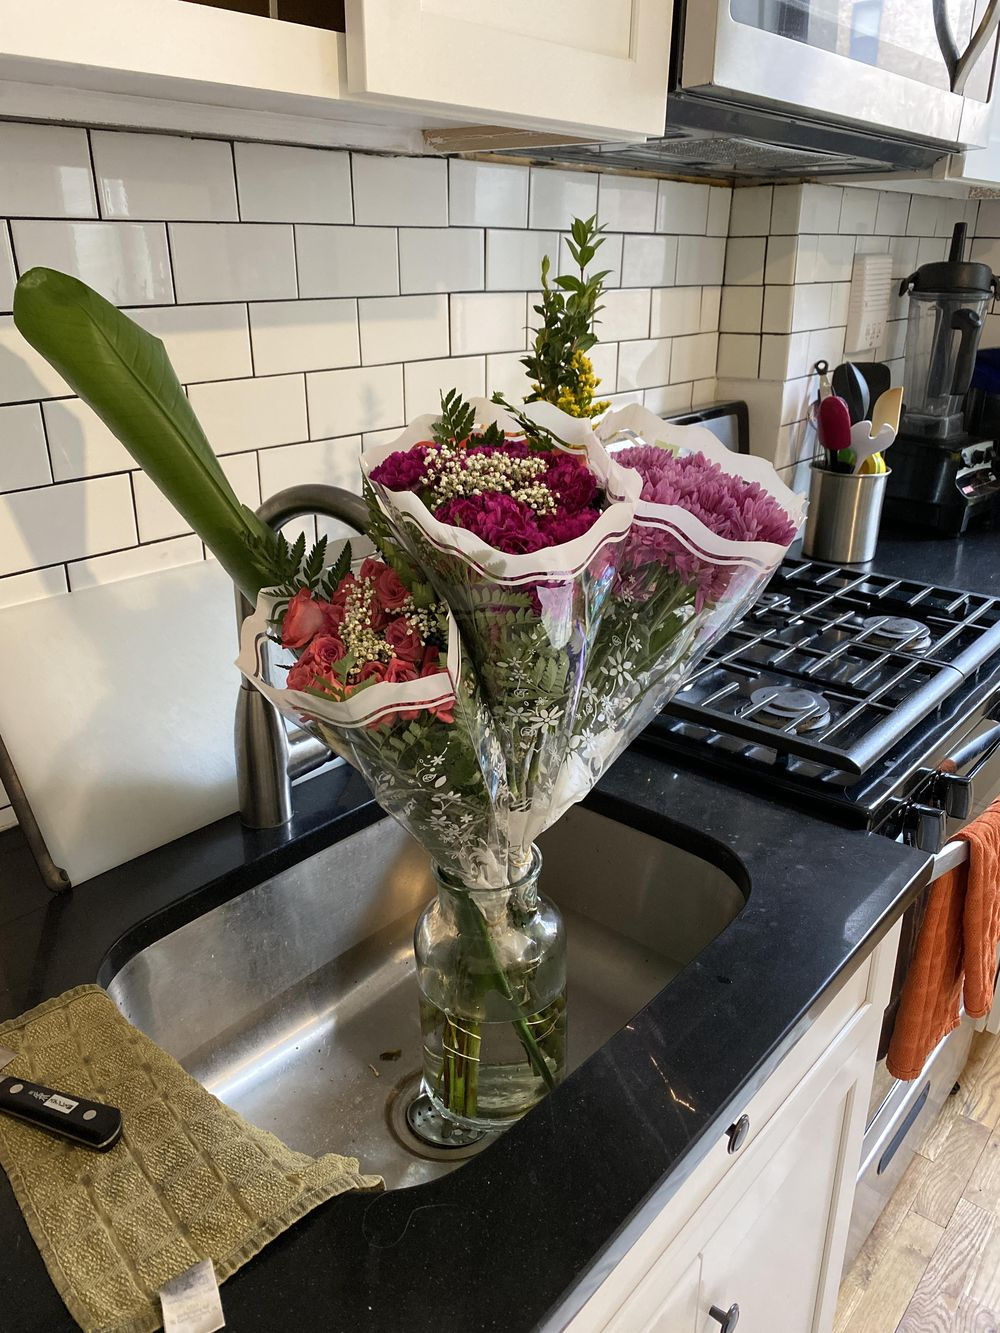 Giving Grocery Store Flowers a Makeover - image 1 - student project